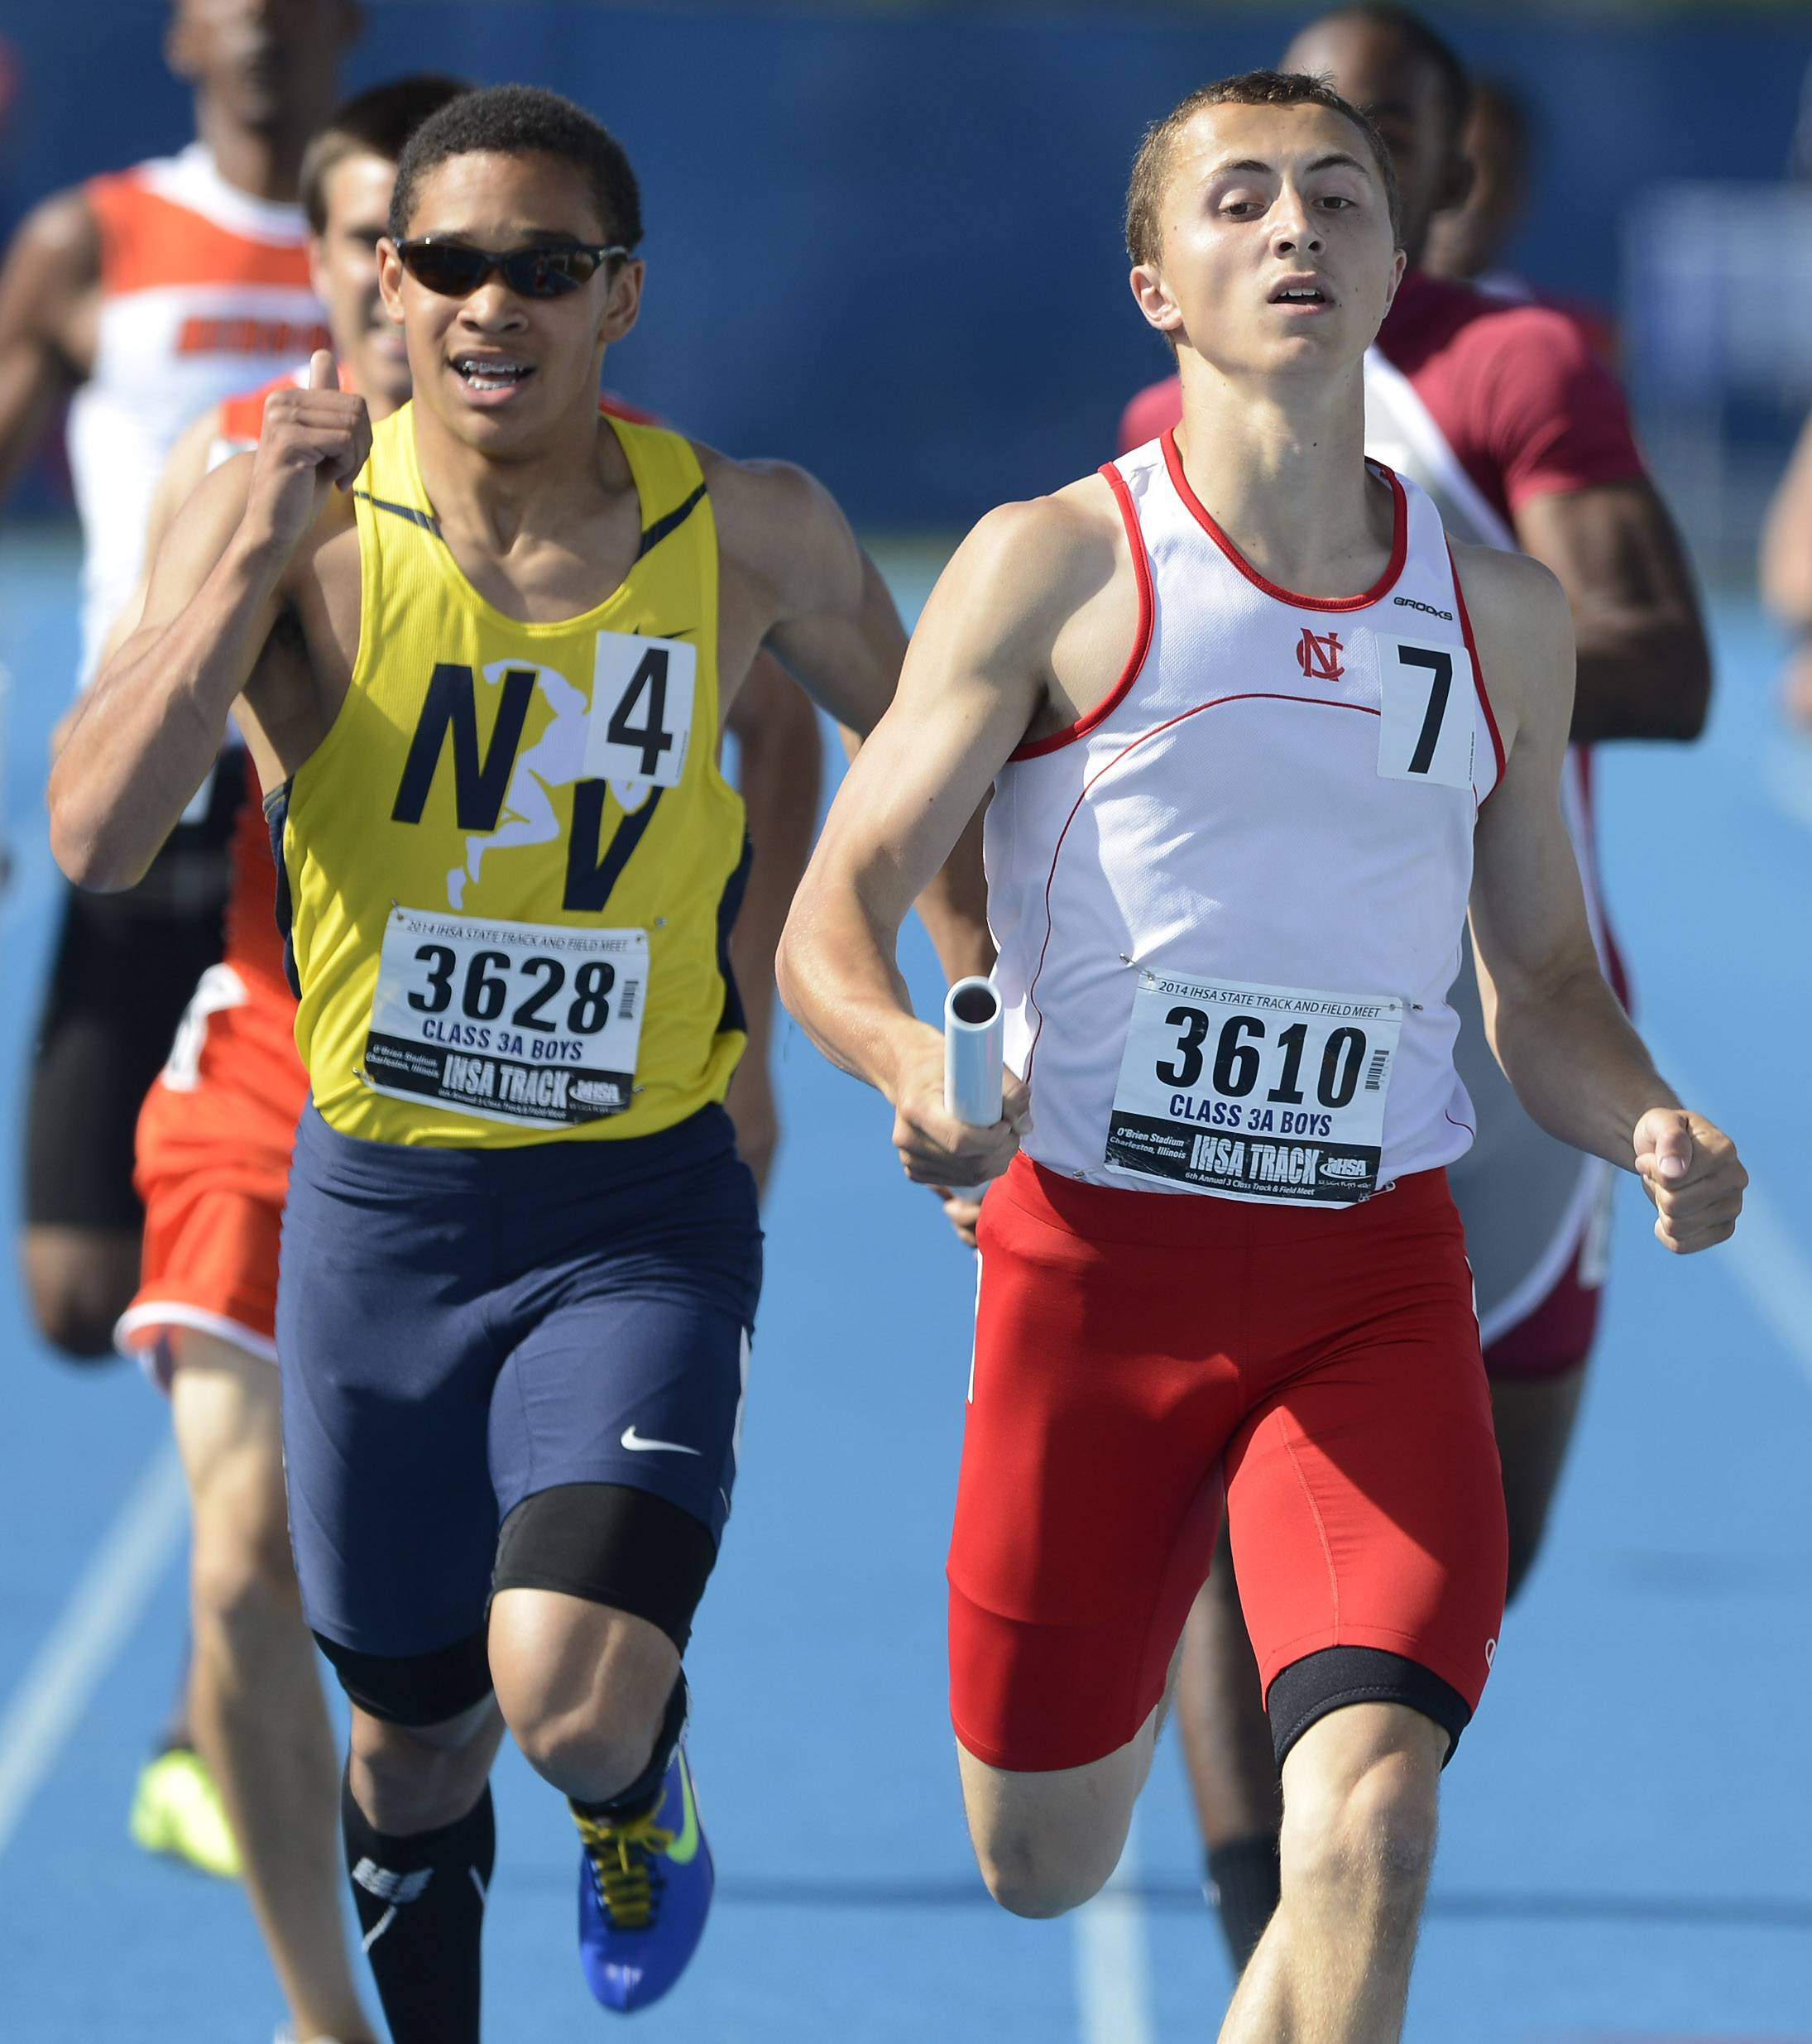 Neuqua Valley's Ty Moss, left, and Naperville Central's Sam Bransby cross the finish line in adjacent lanes while running in the 4x400-meter relay during the boys class 3A state track and field finals in Charleston Saturday.